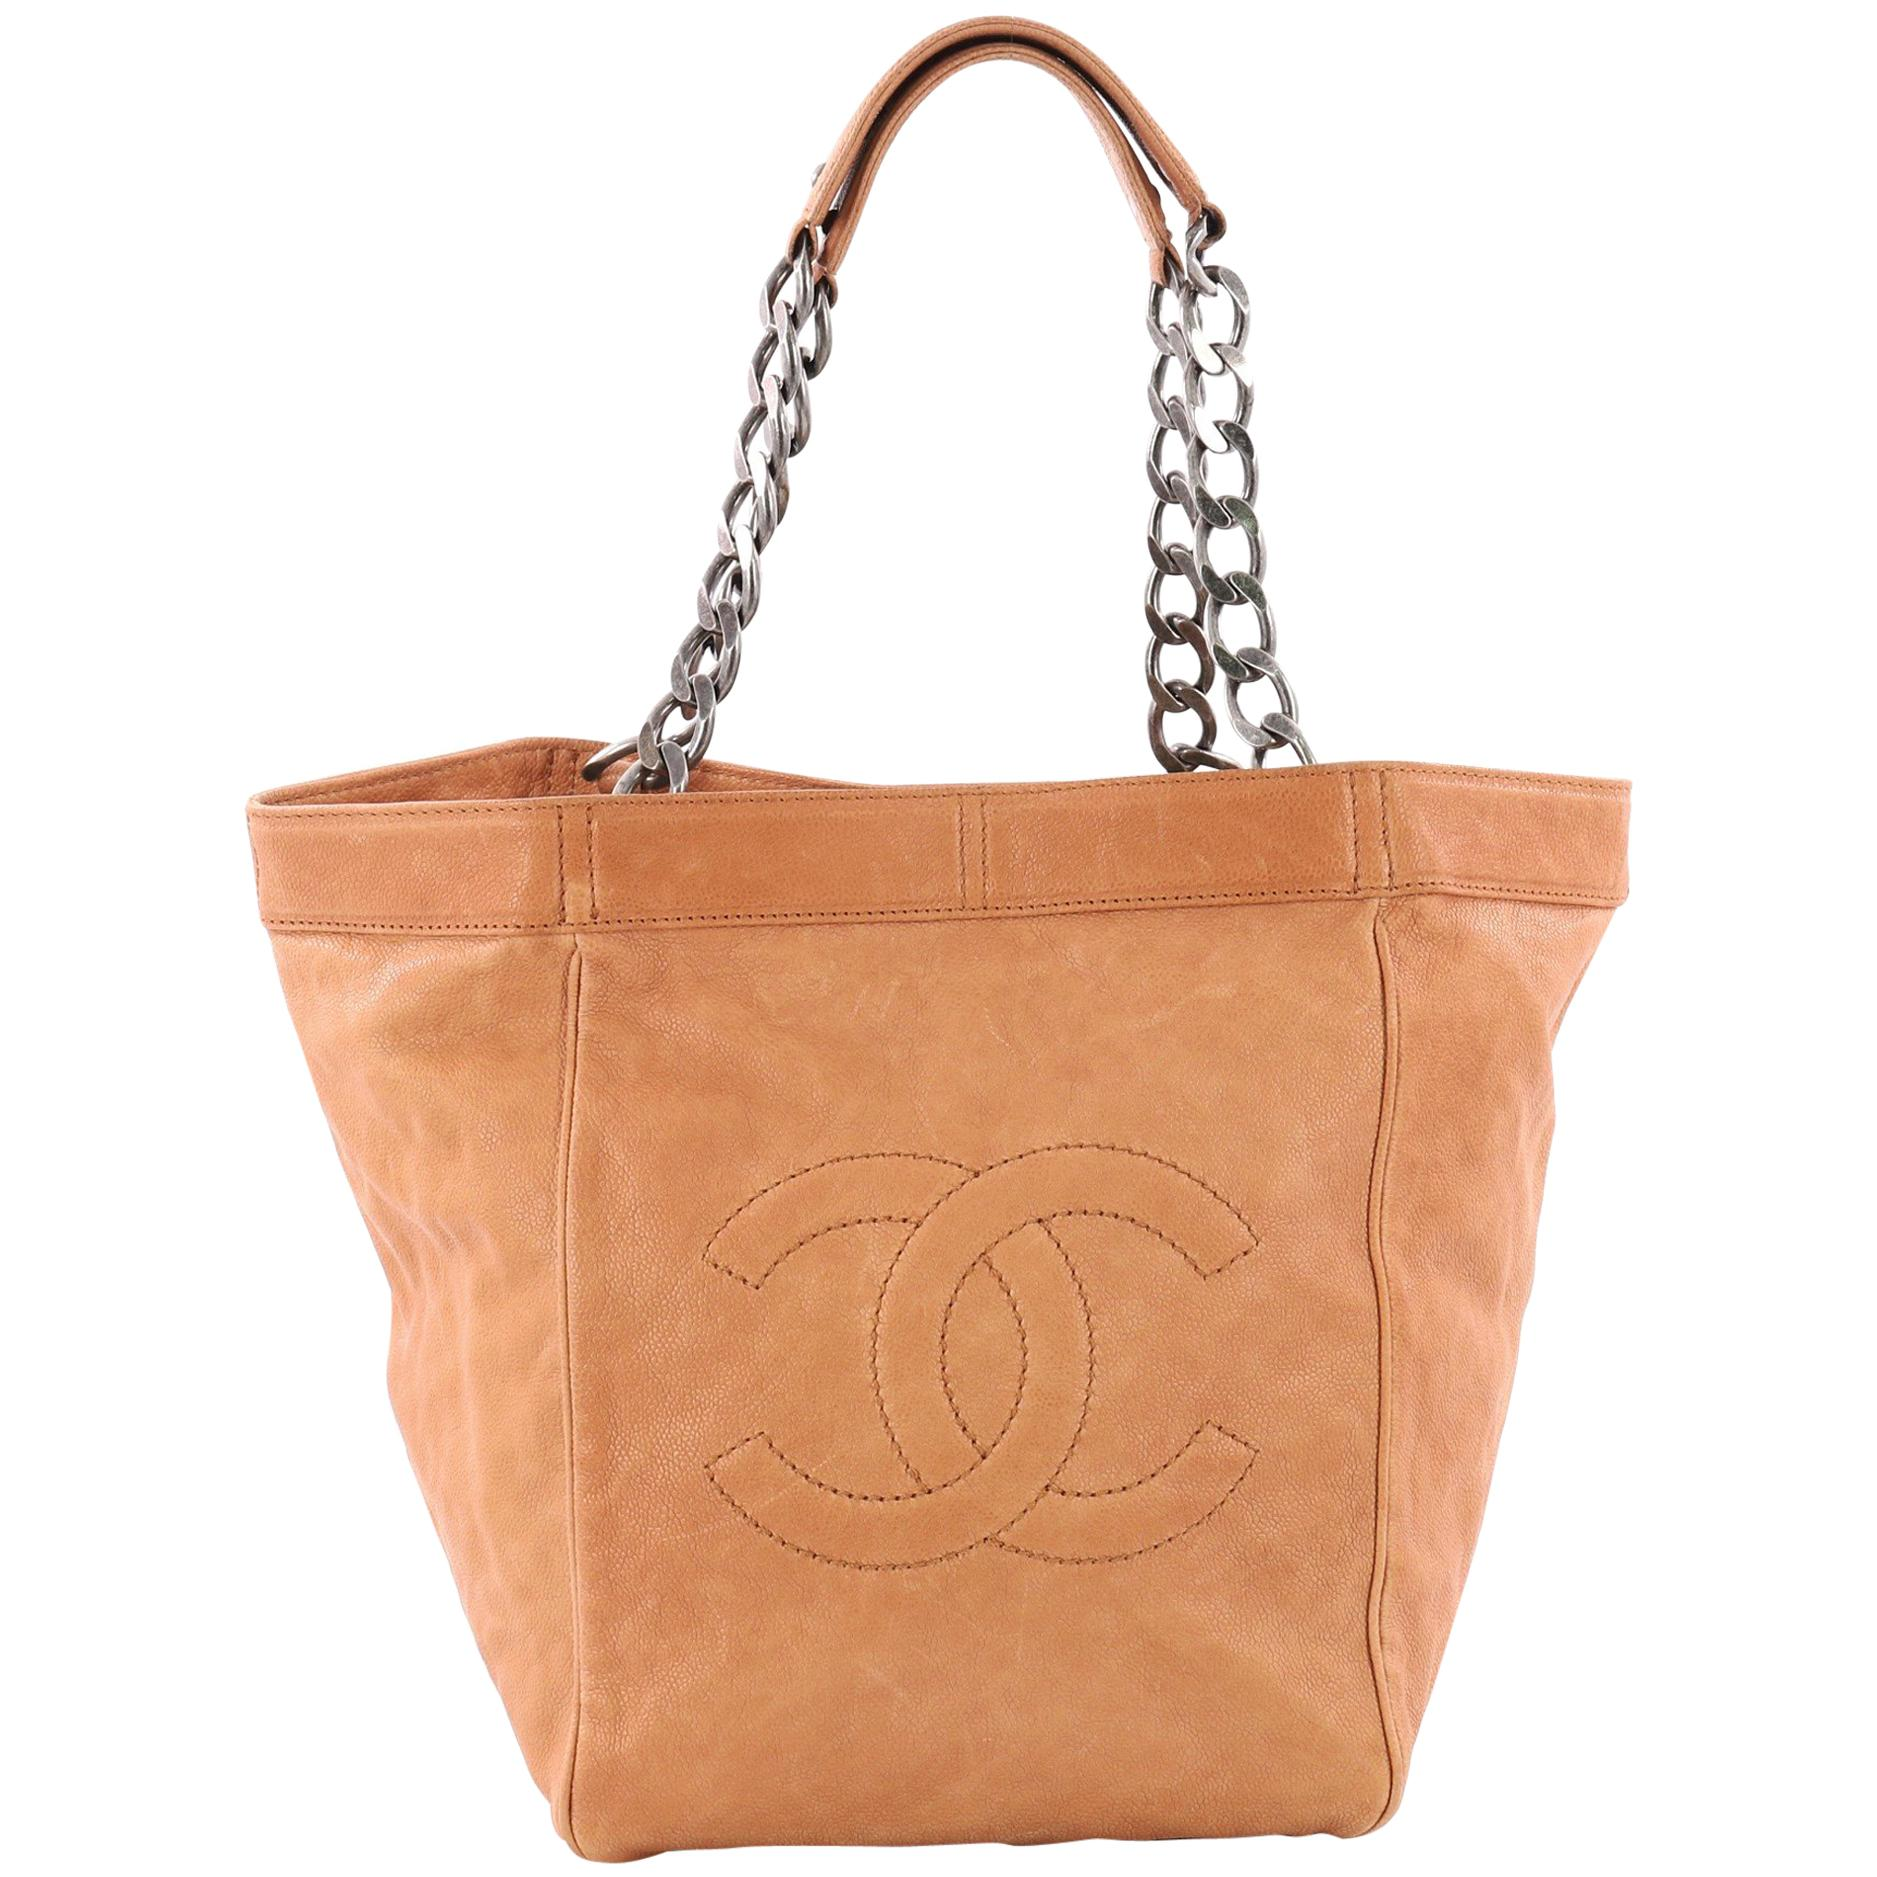 738cd0a5ffdd Chanel CC Chain Tote Caviar Large at 1stdibs